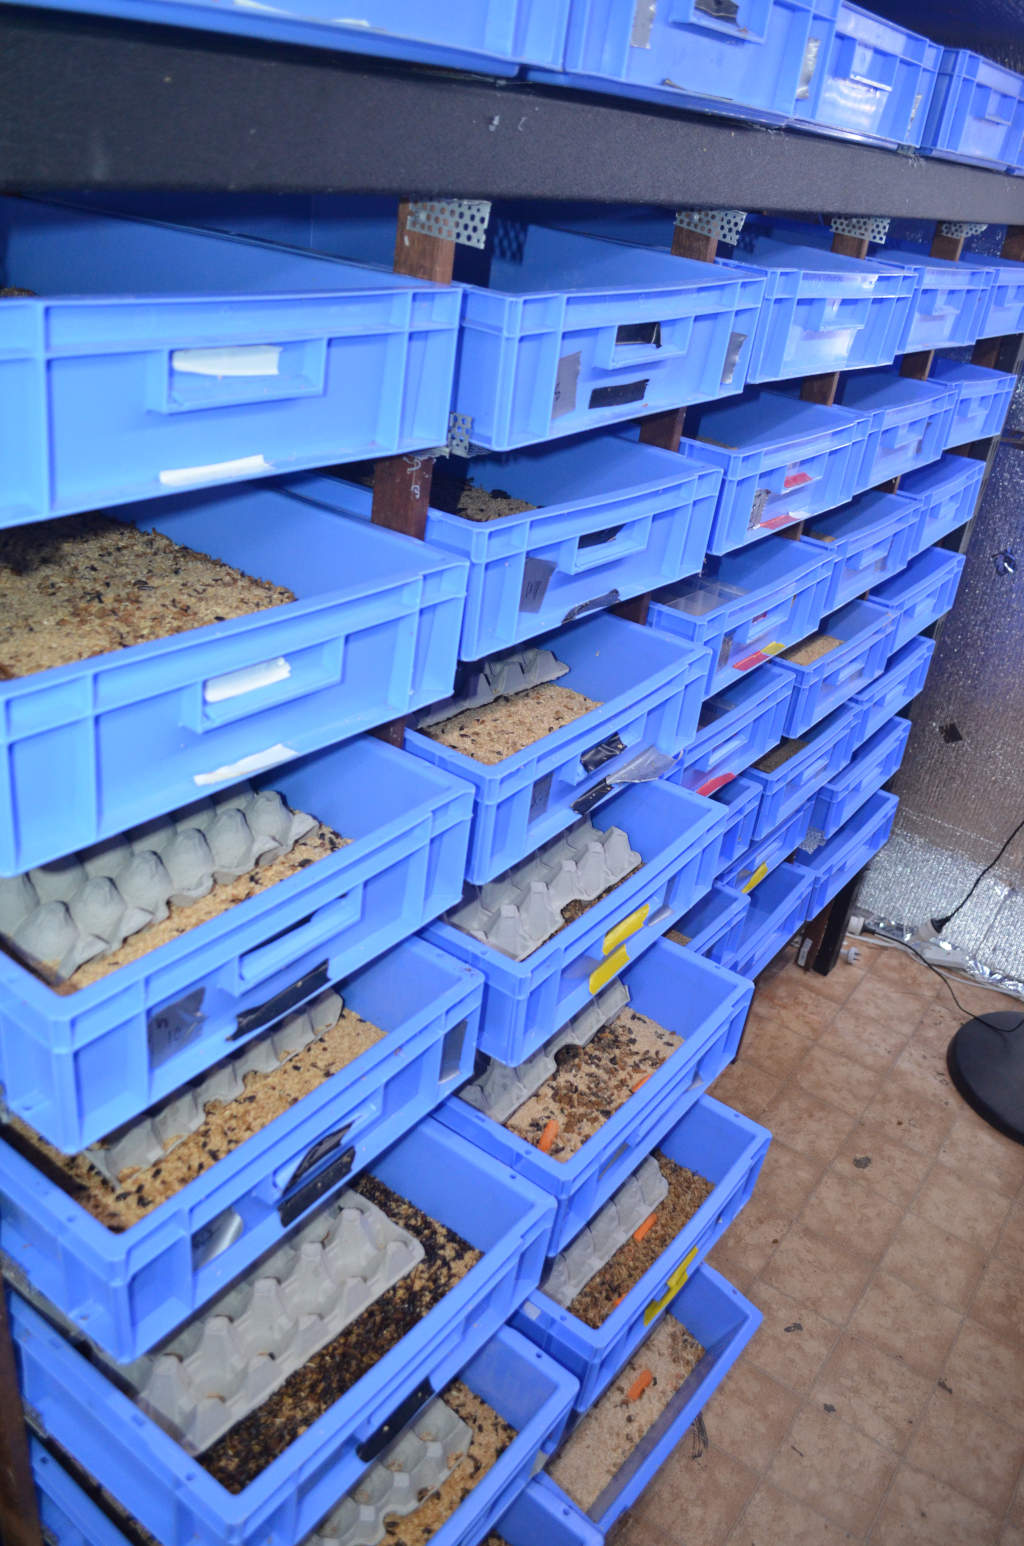 photo of a commercial mealworm farm with hundreds of blue trays in shelving. The front rows are pulled out so you can see the mealworms.